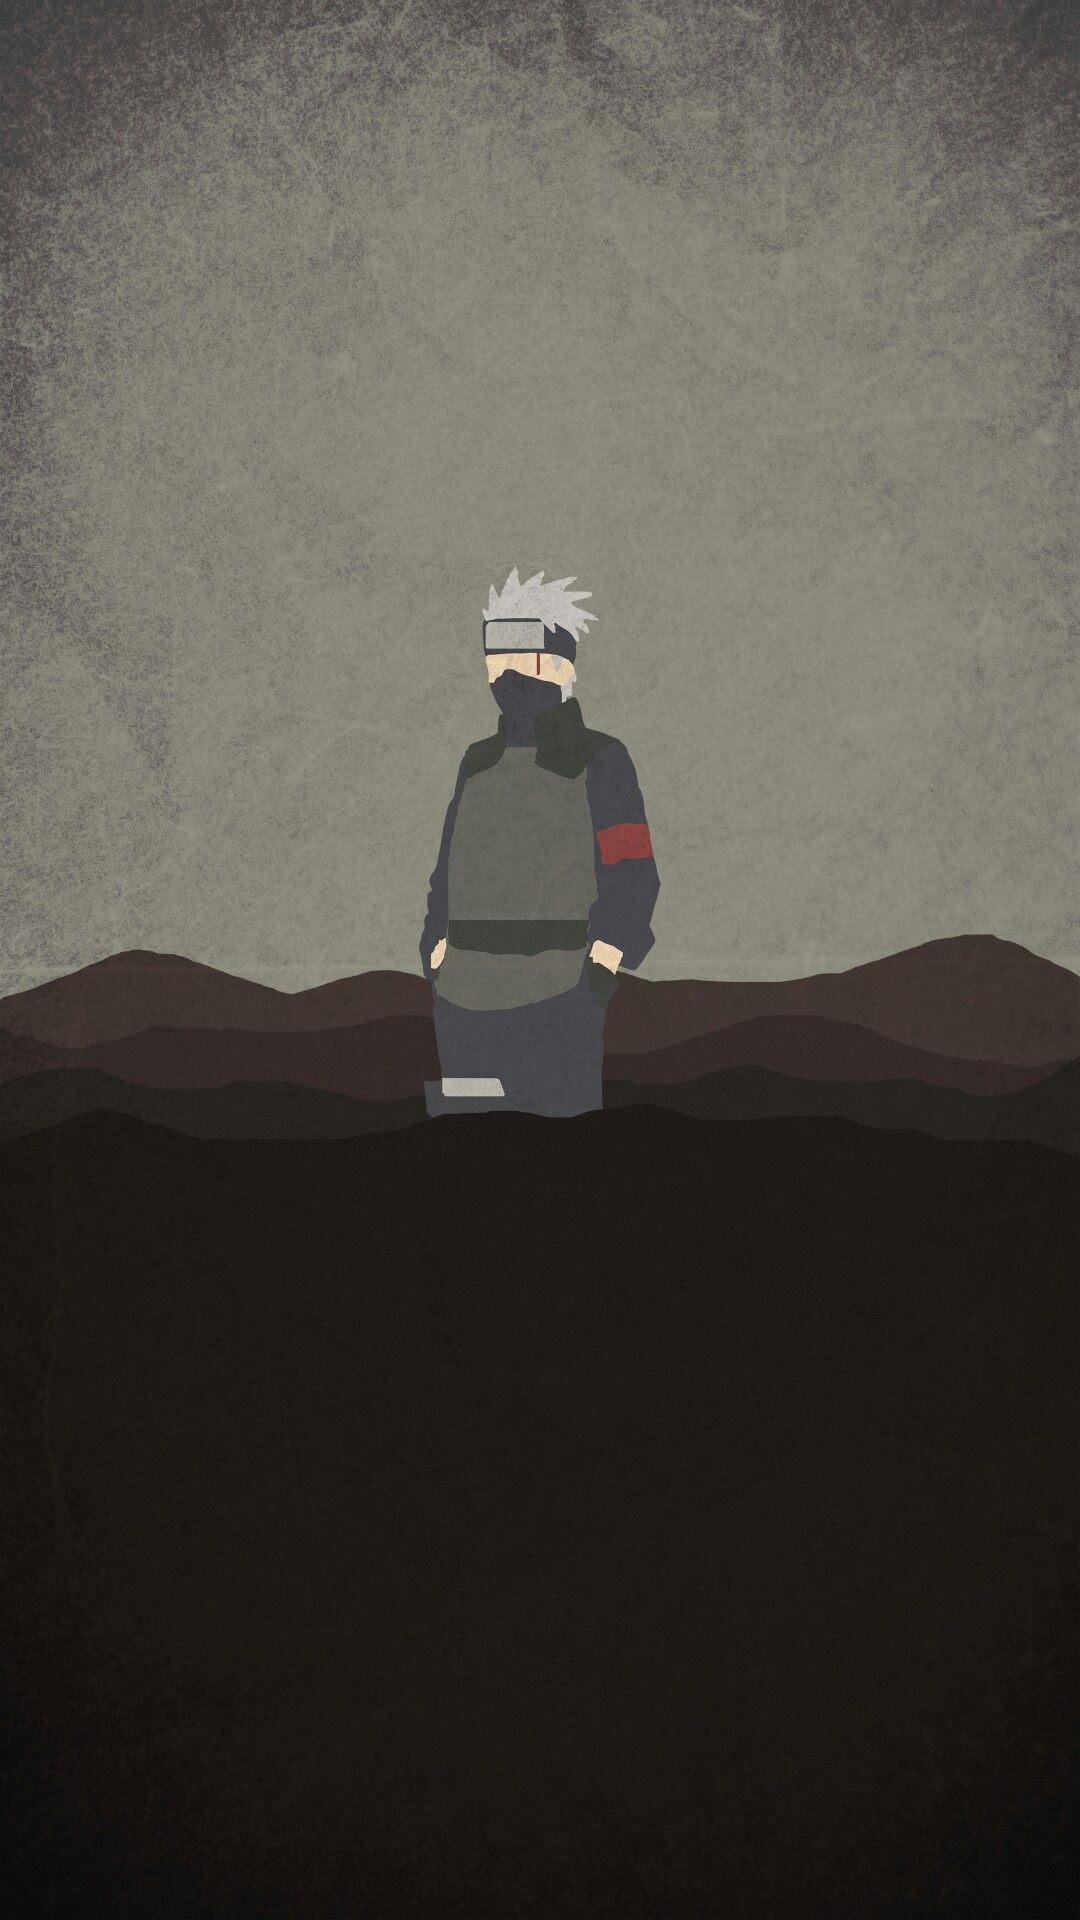 Download Kakashi Phone Wallpaper Hd Backgrounds Download Itl Cat